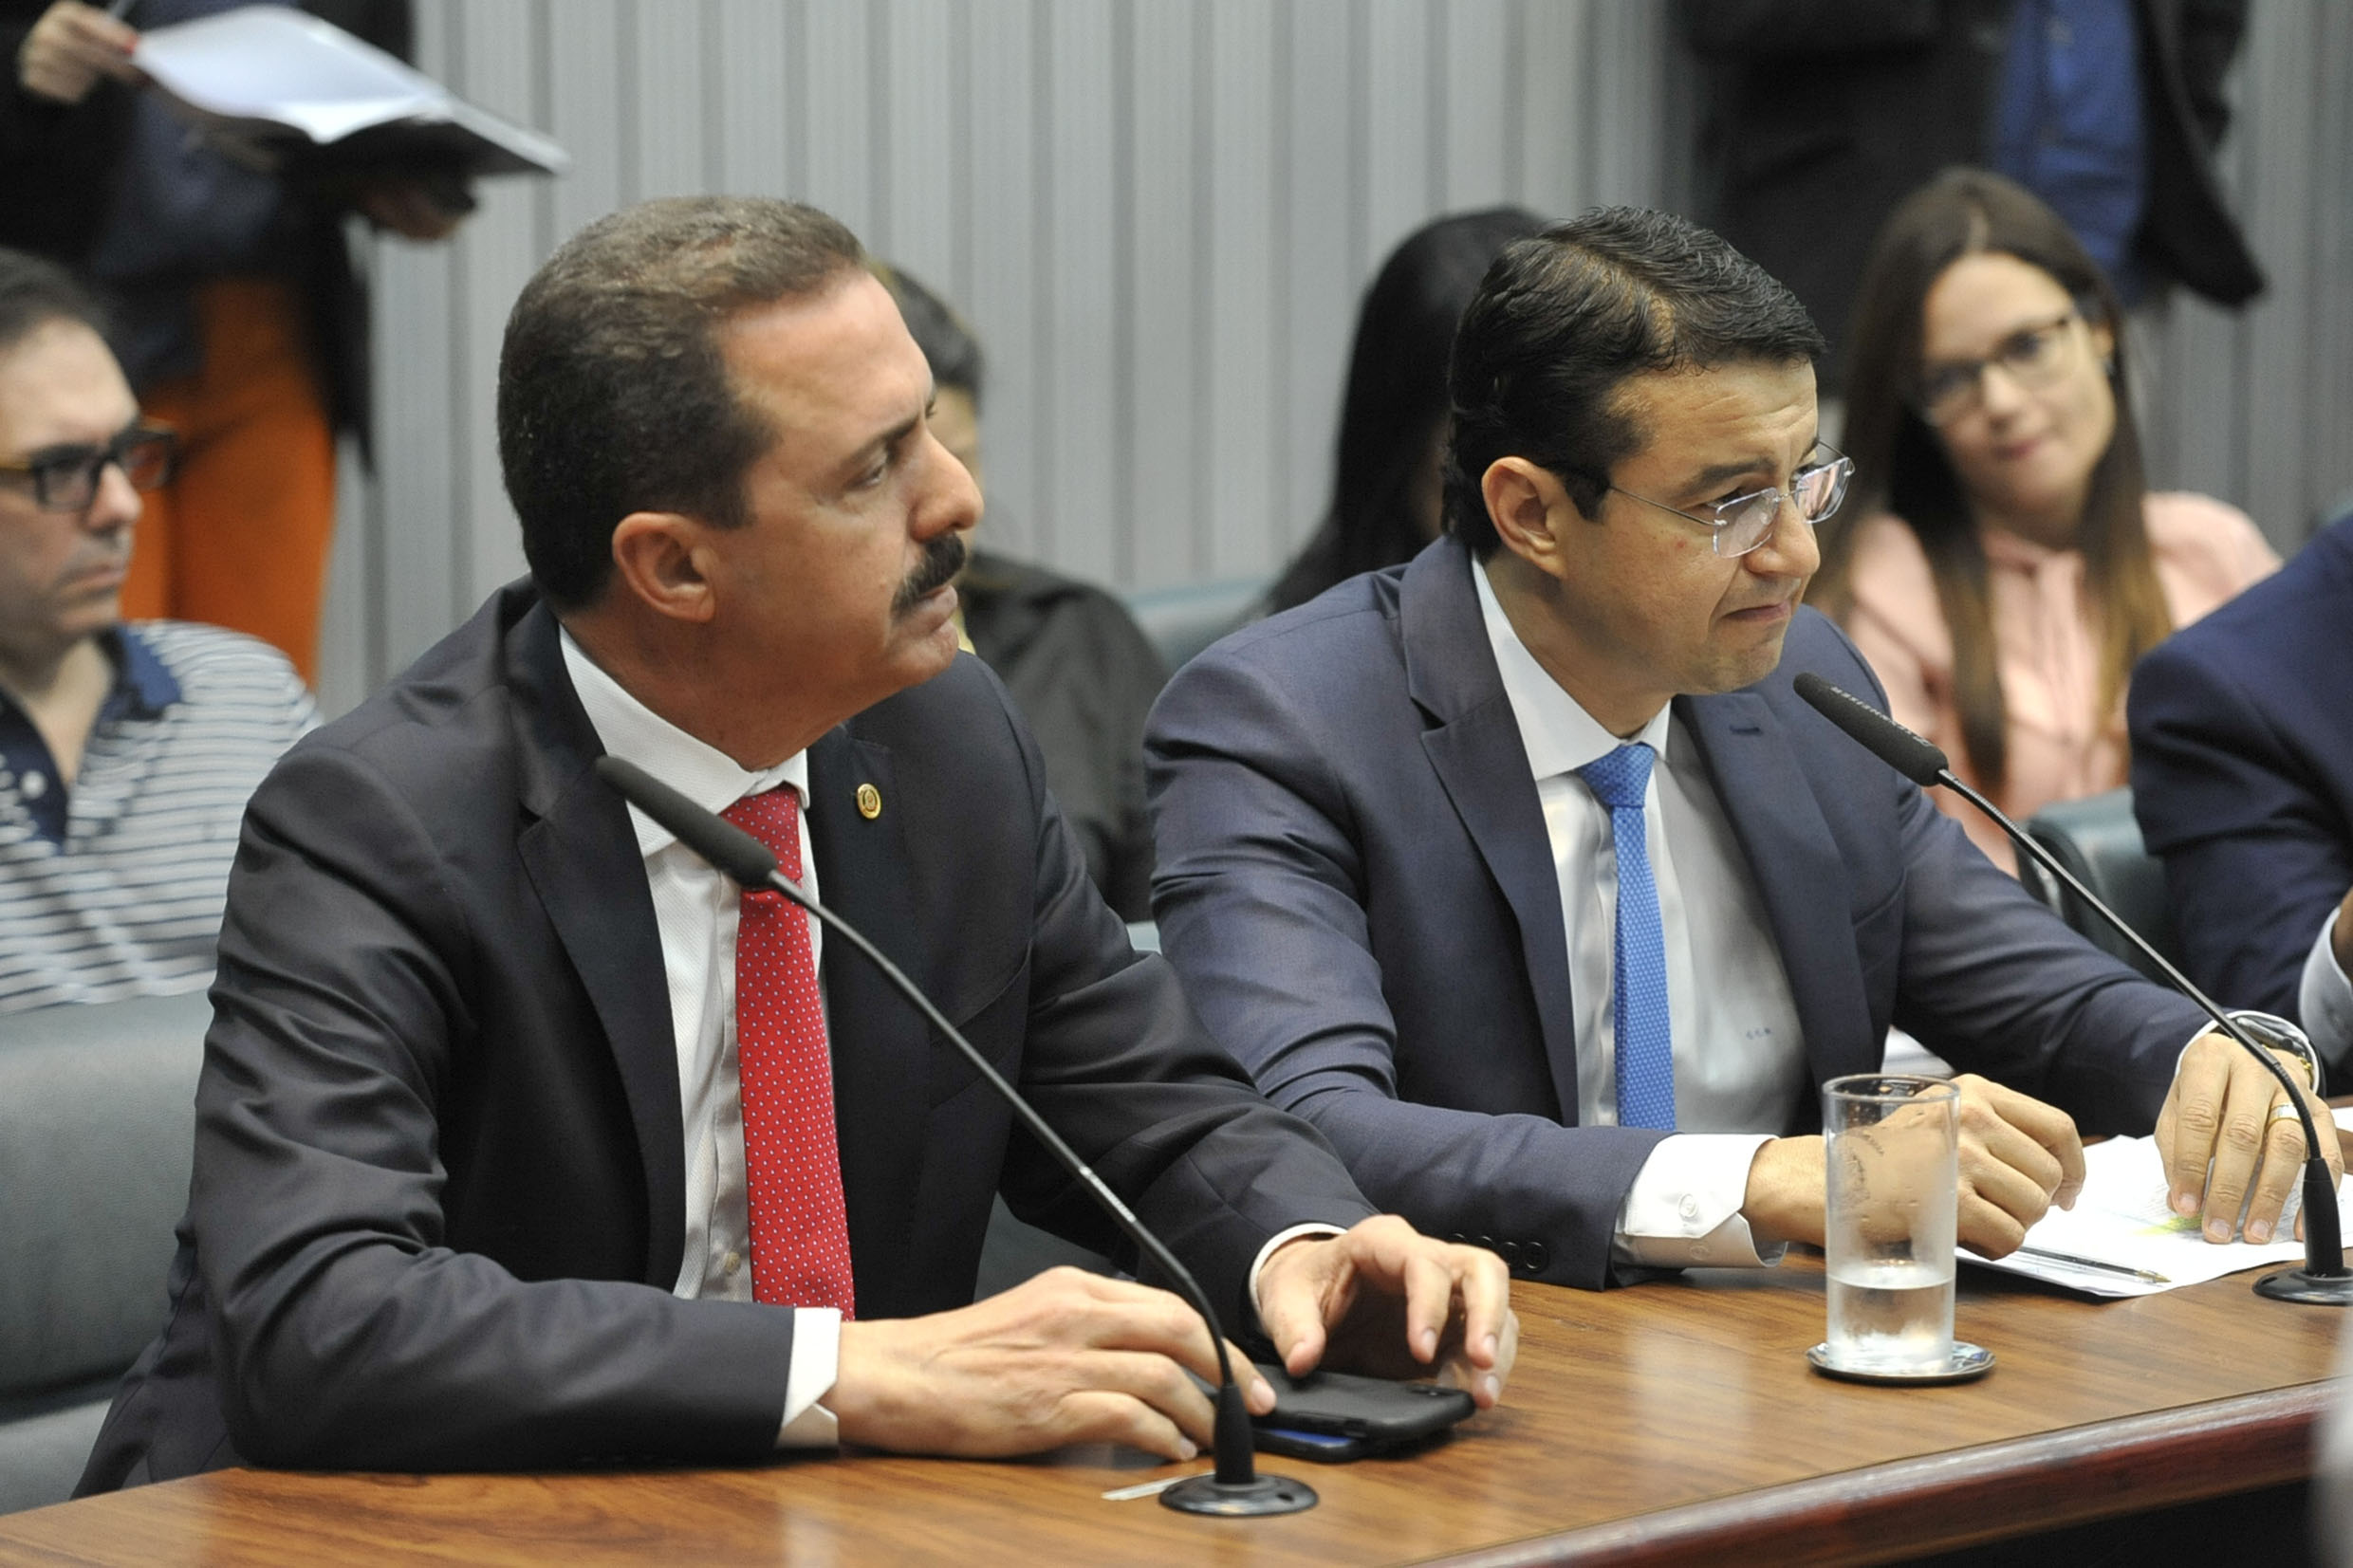 Itamar Borgese Carlos Cezar<a style='float:right' href='https://www3.al.sp.gov.br/repositorio/noticia/N-08-2019/fg237534.jpg' target=_blank><img src='/_img/material-file-download-white.png' width='14px' alt='Clique para baixar a imagem'></a>